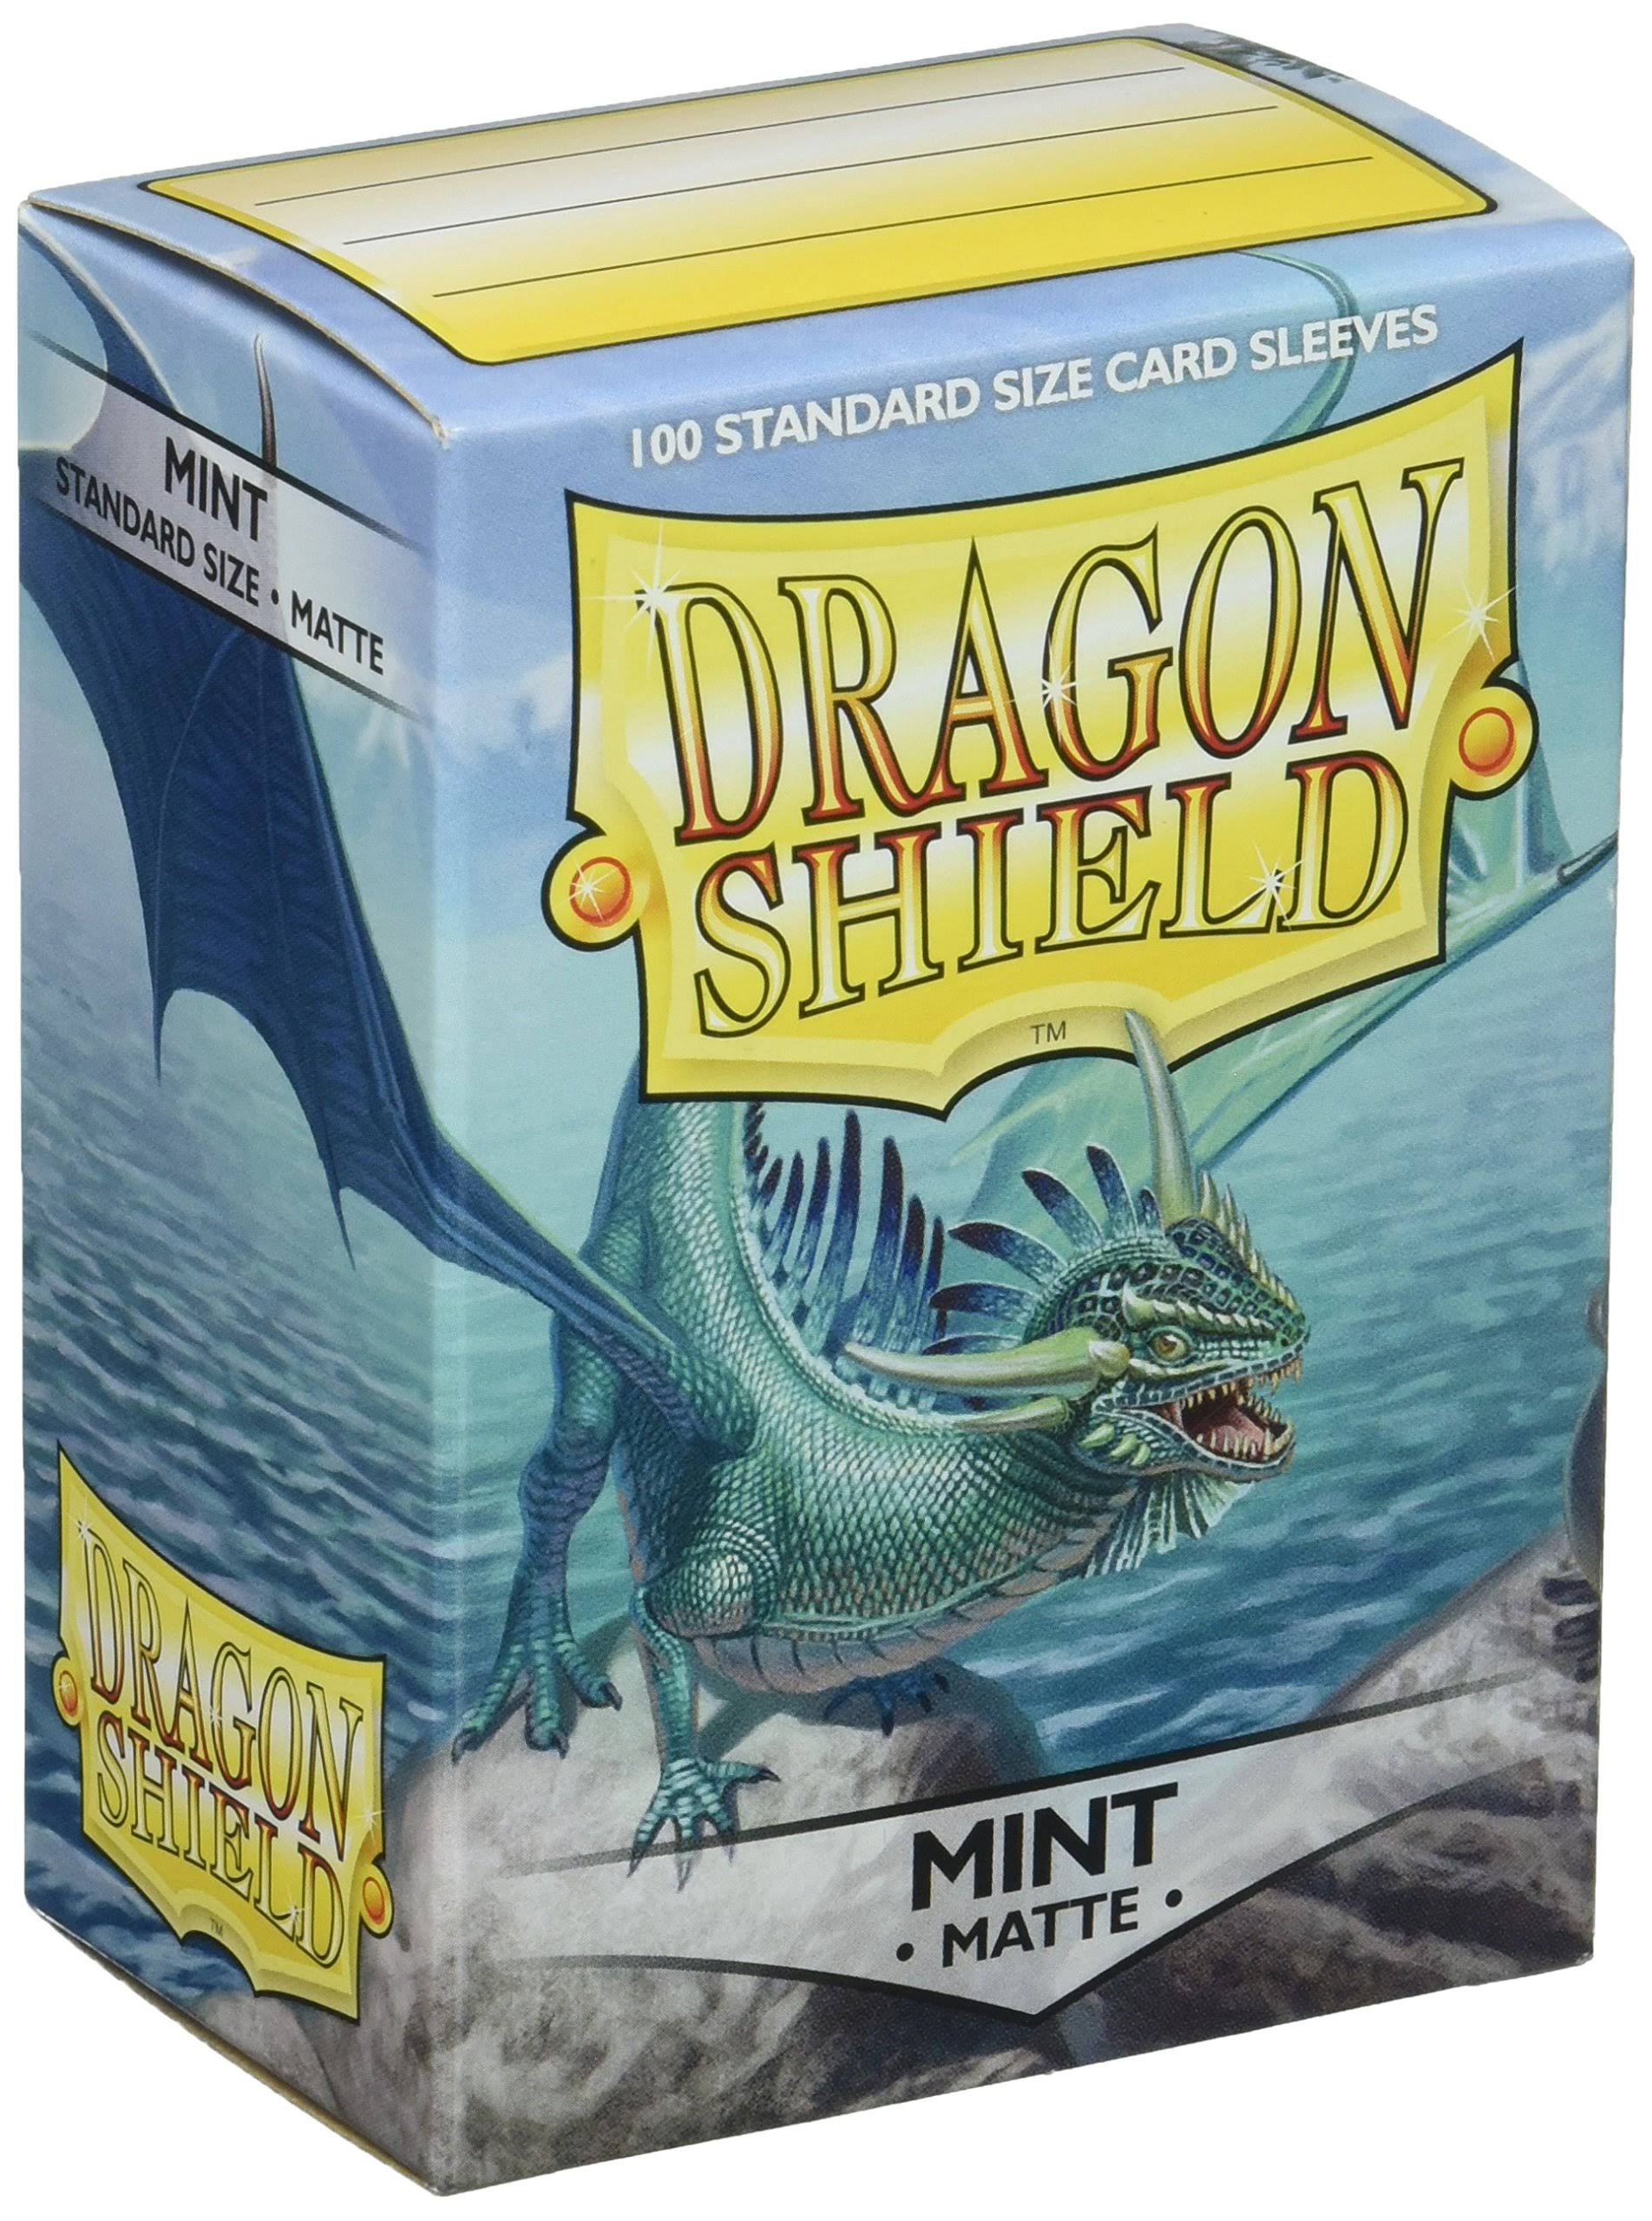 Dragon Shield Card Sleeves - 100 Standard Size Card Sleeves, Mint Matte